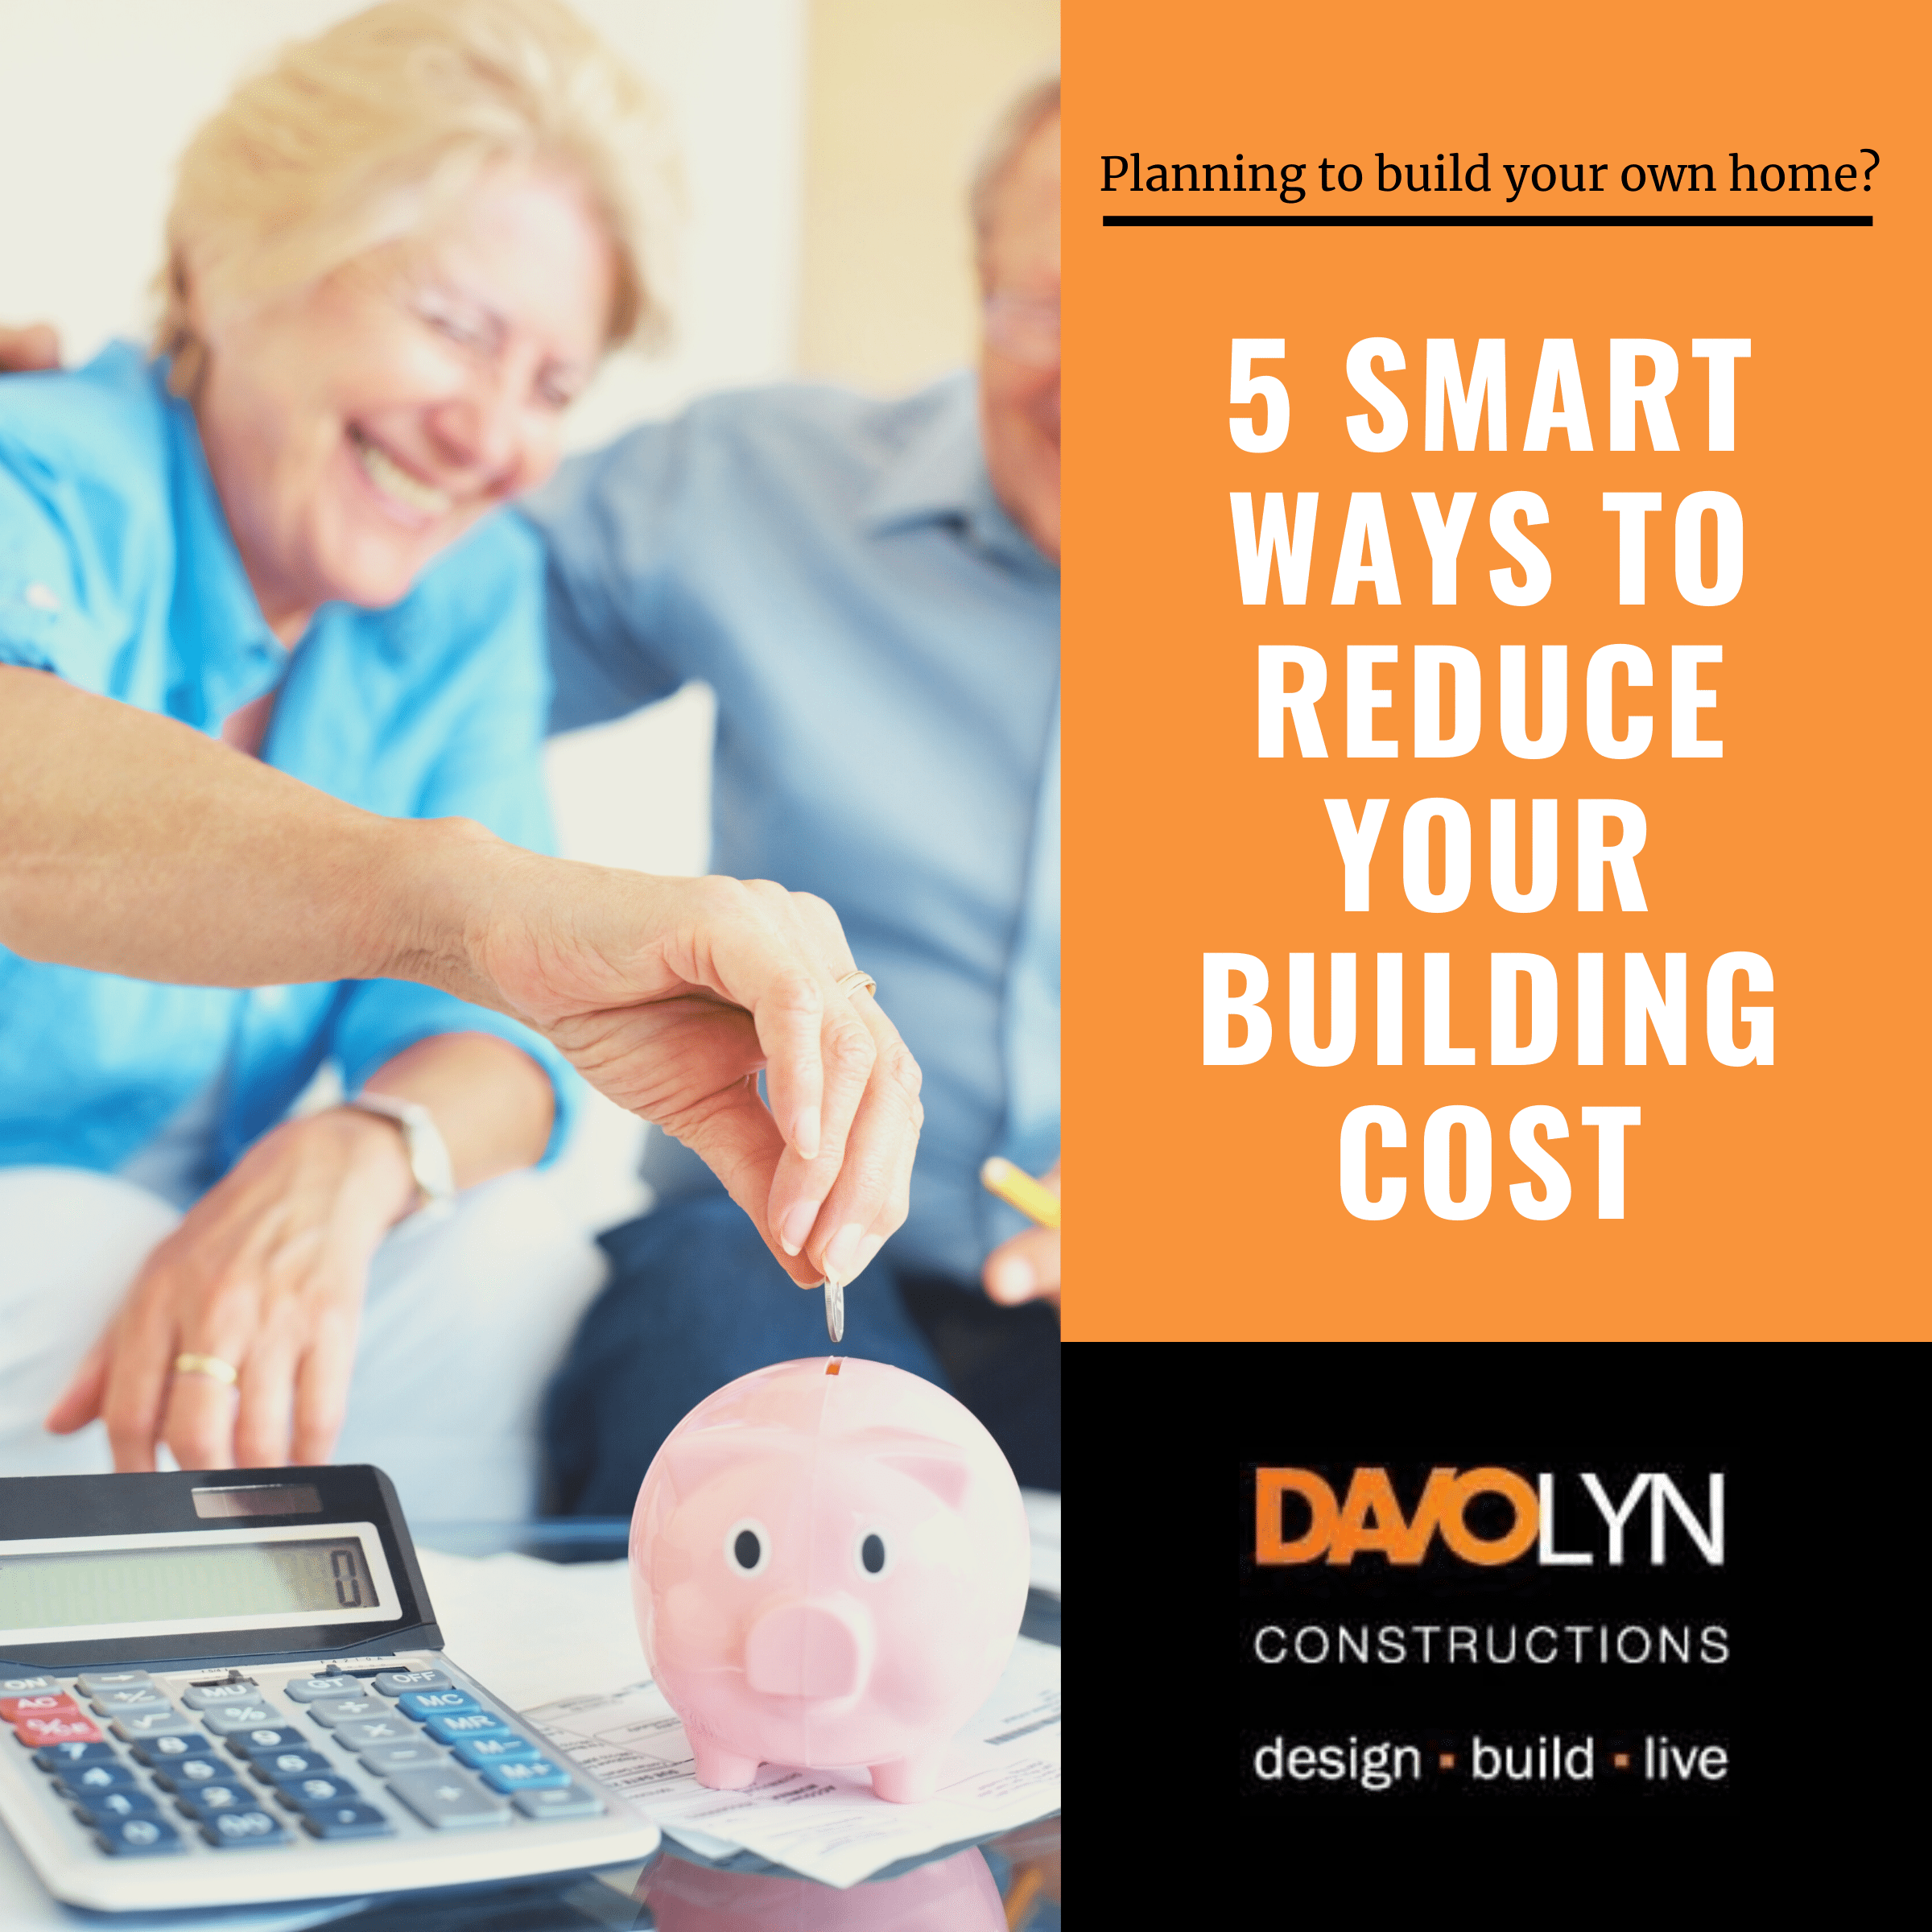 5 Smart Ways to Reduce Your Building Cost